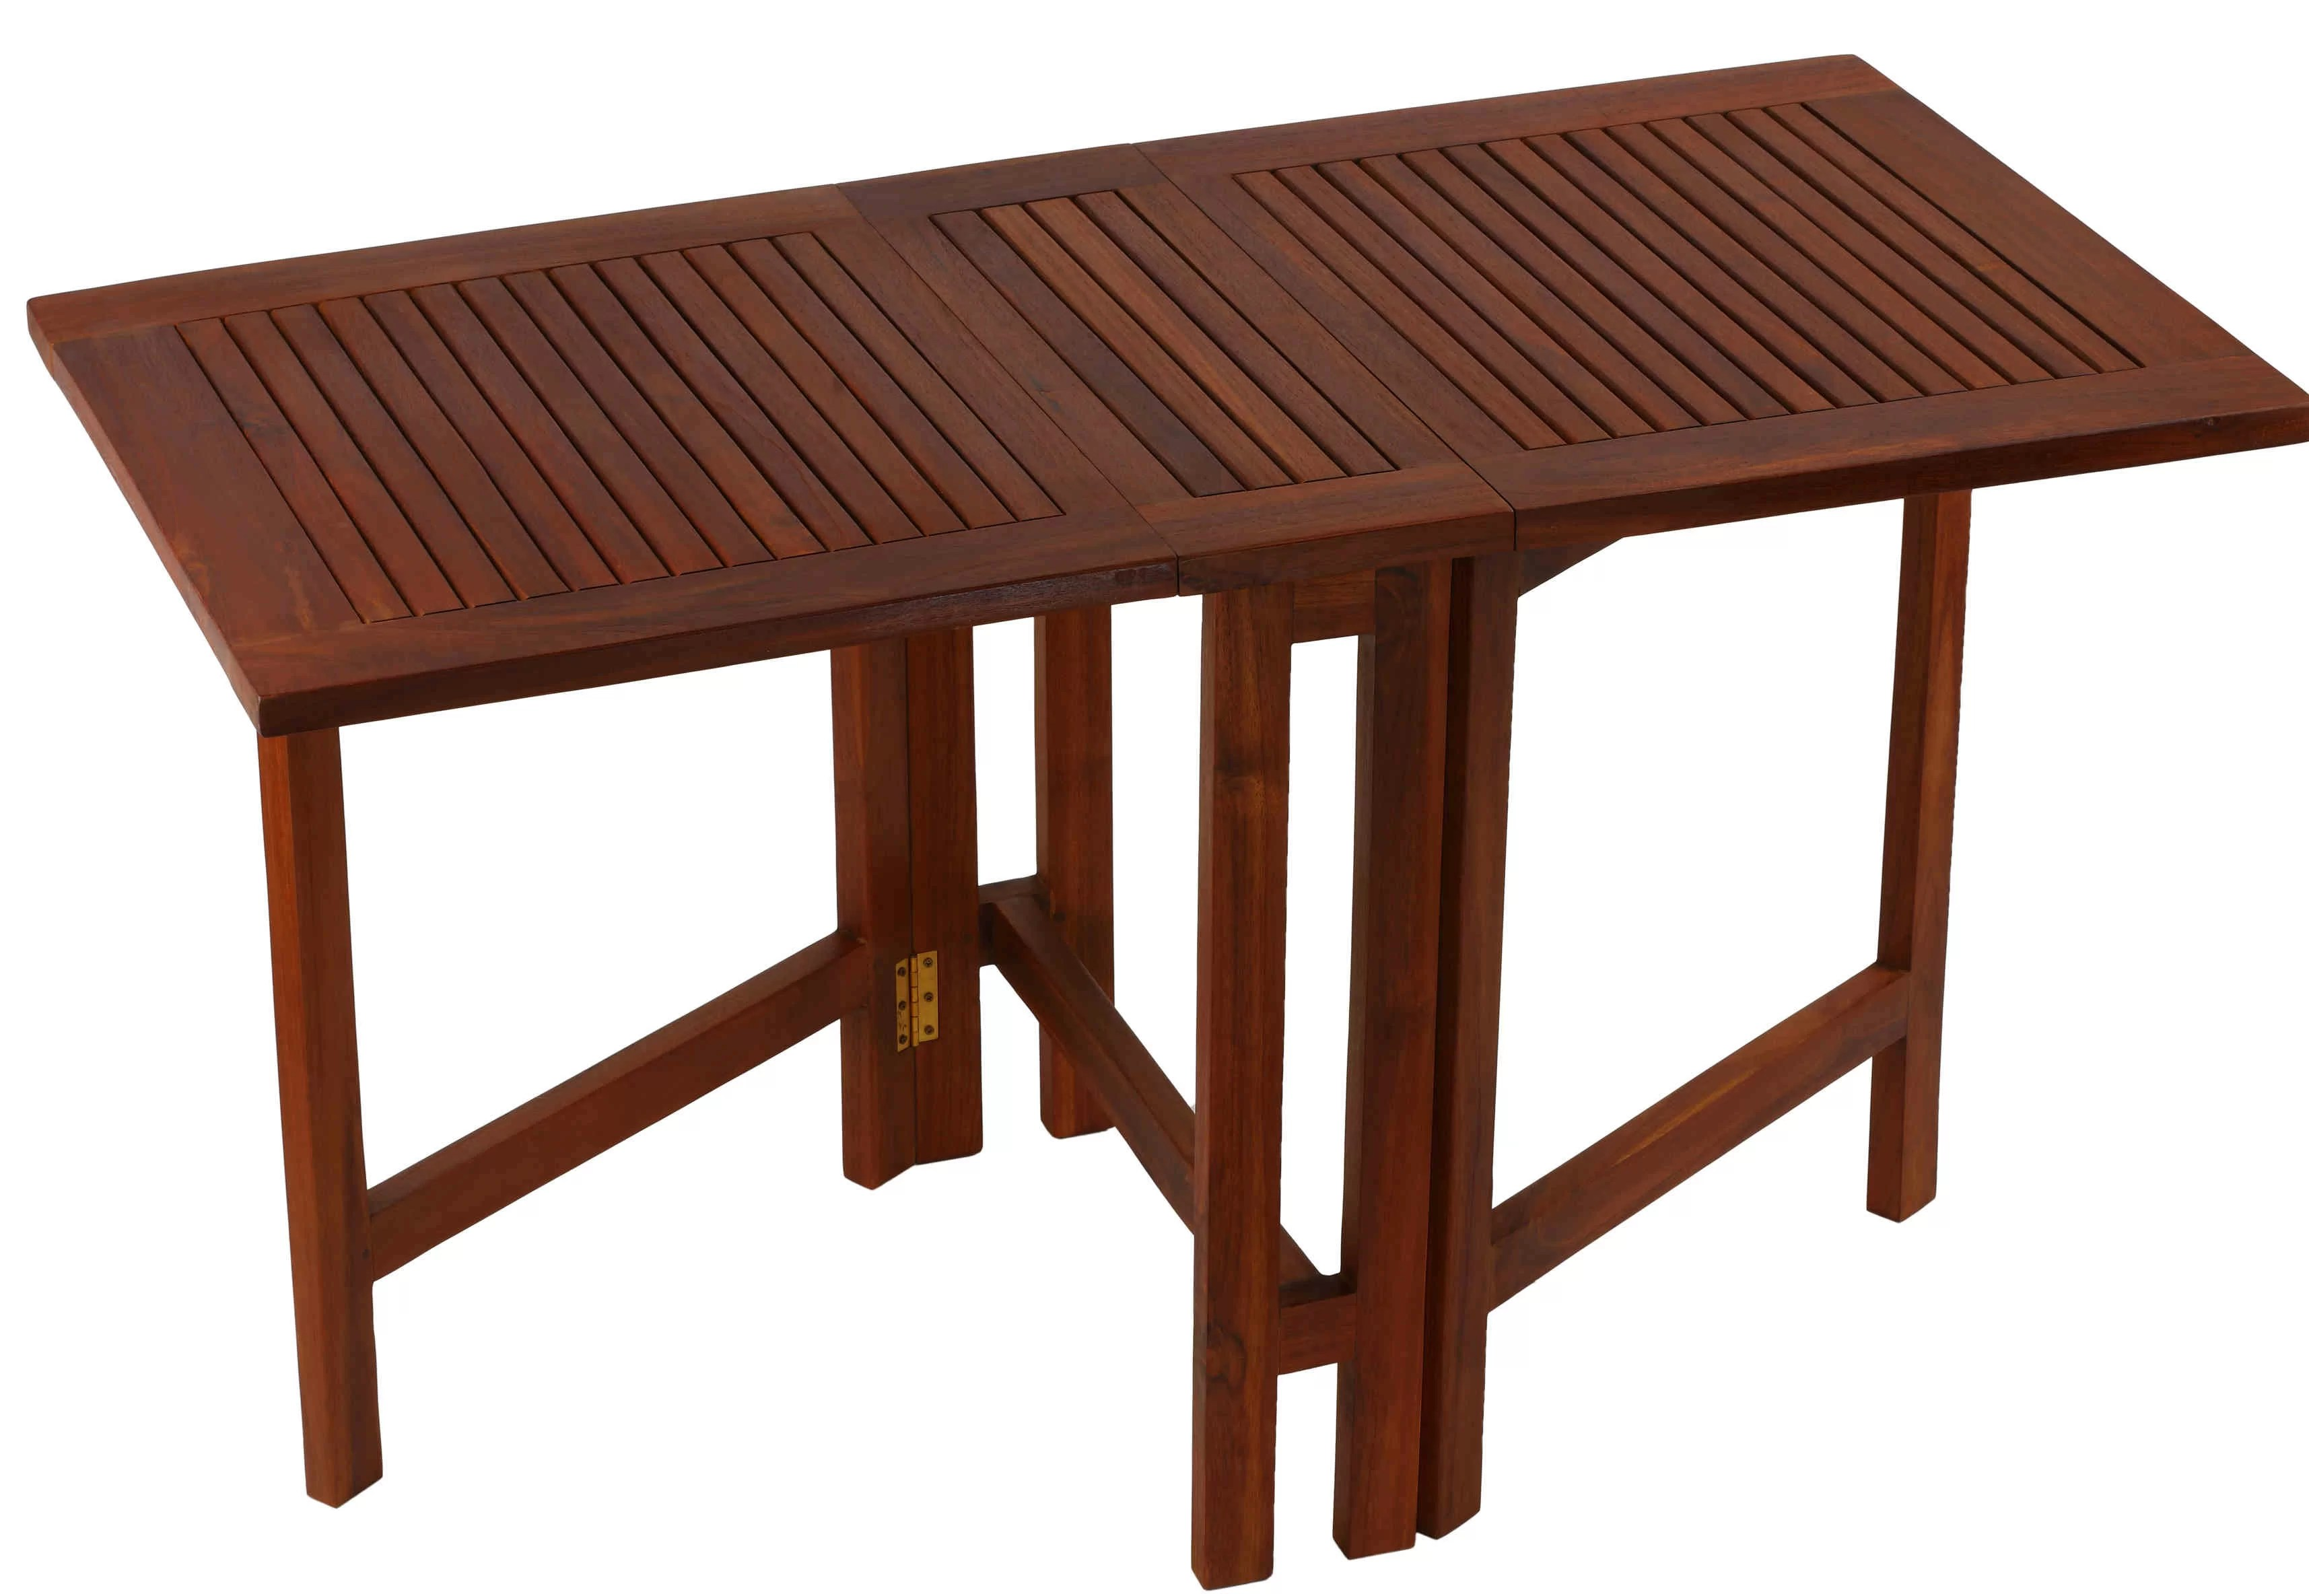 Highland Dunes Kinner Folding Teak Dining Table Reviews Wayfair